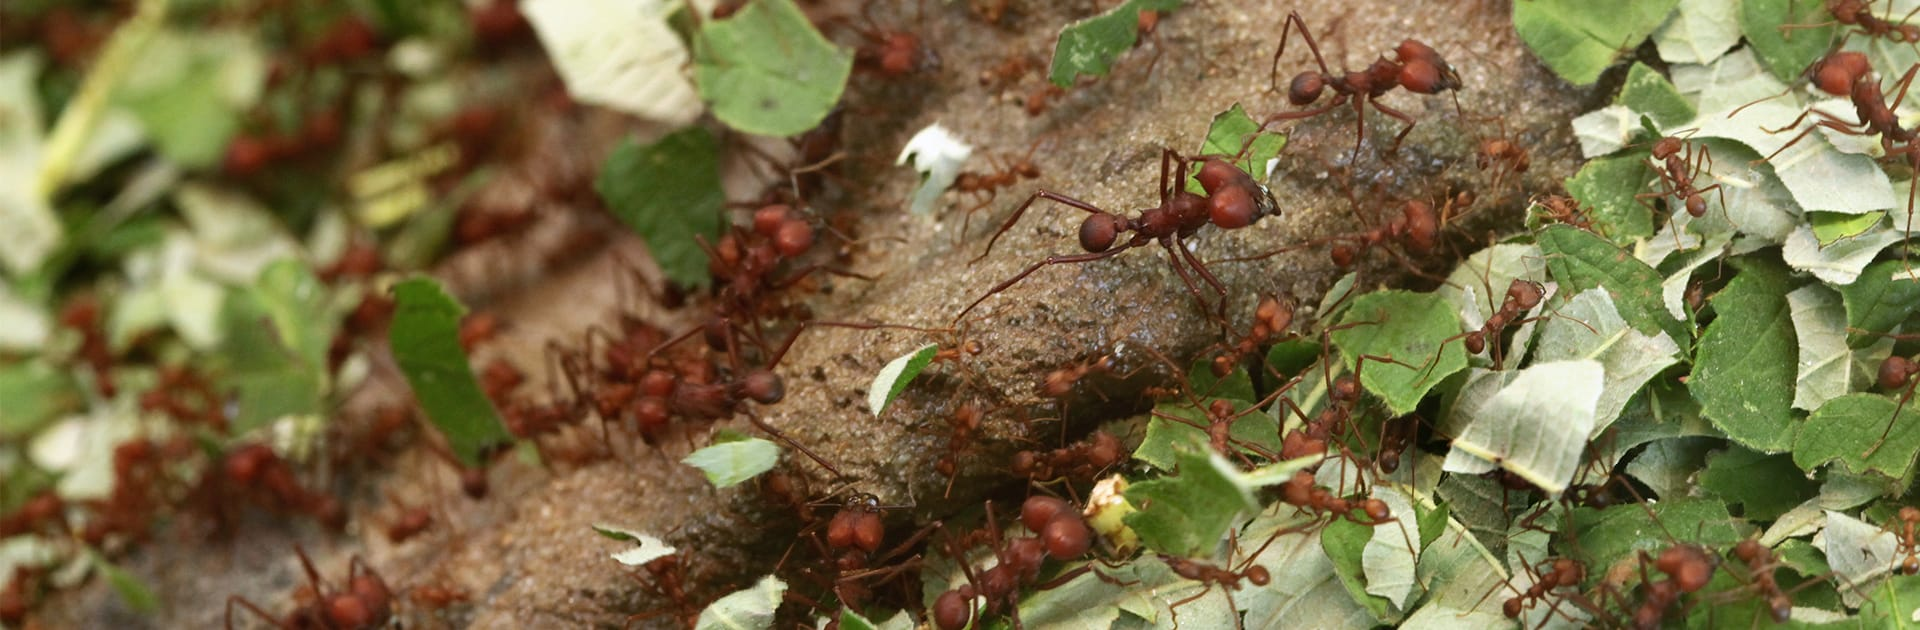 leafcutting ants carrying leaves